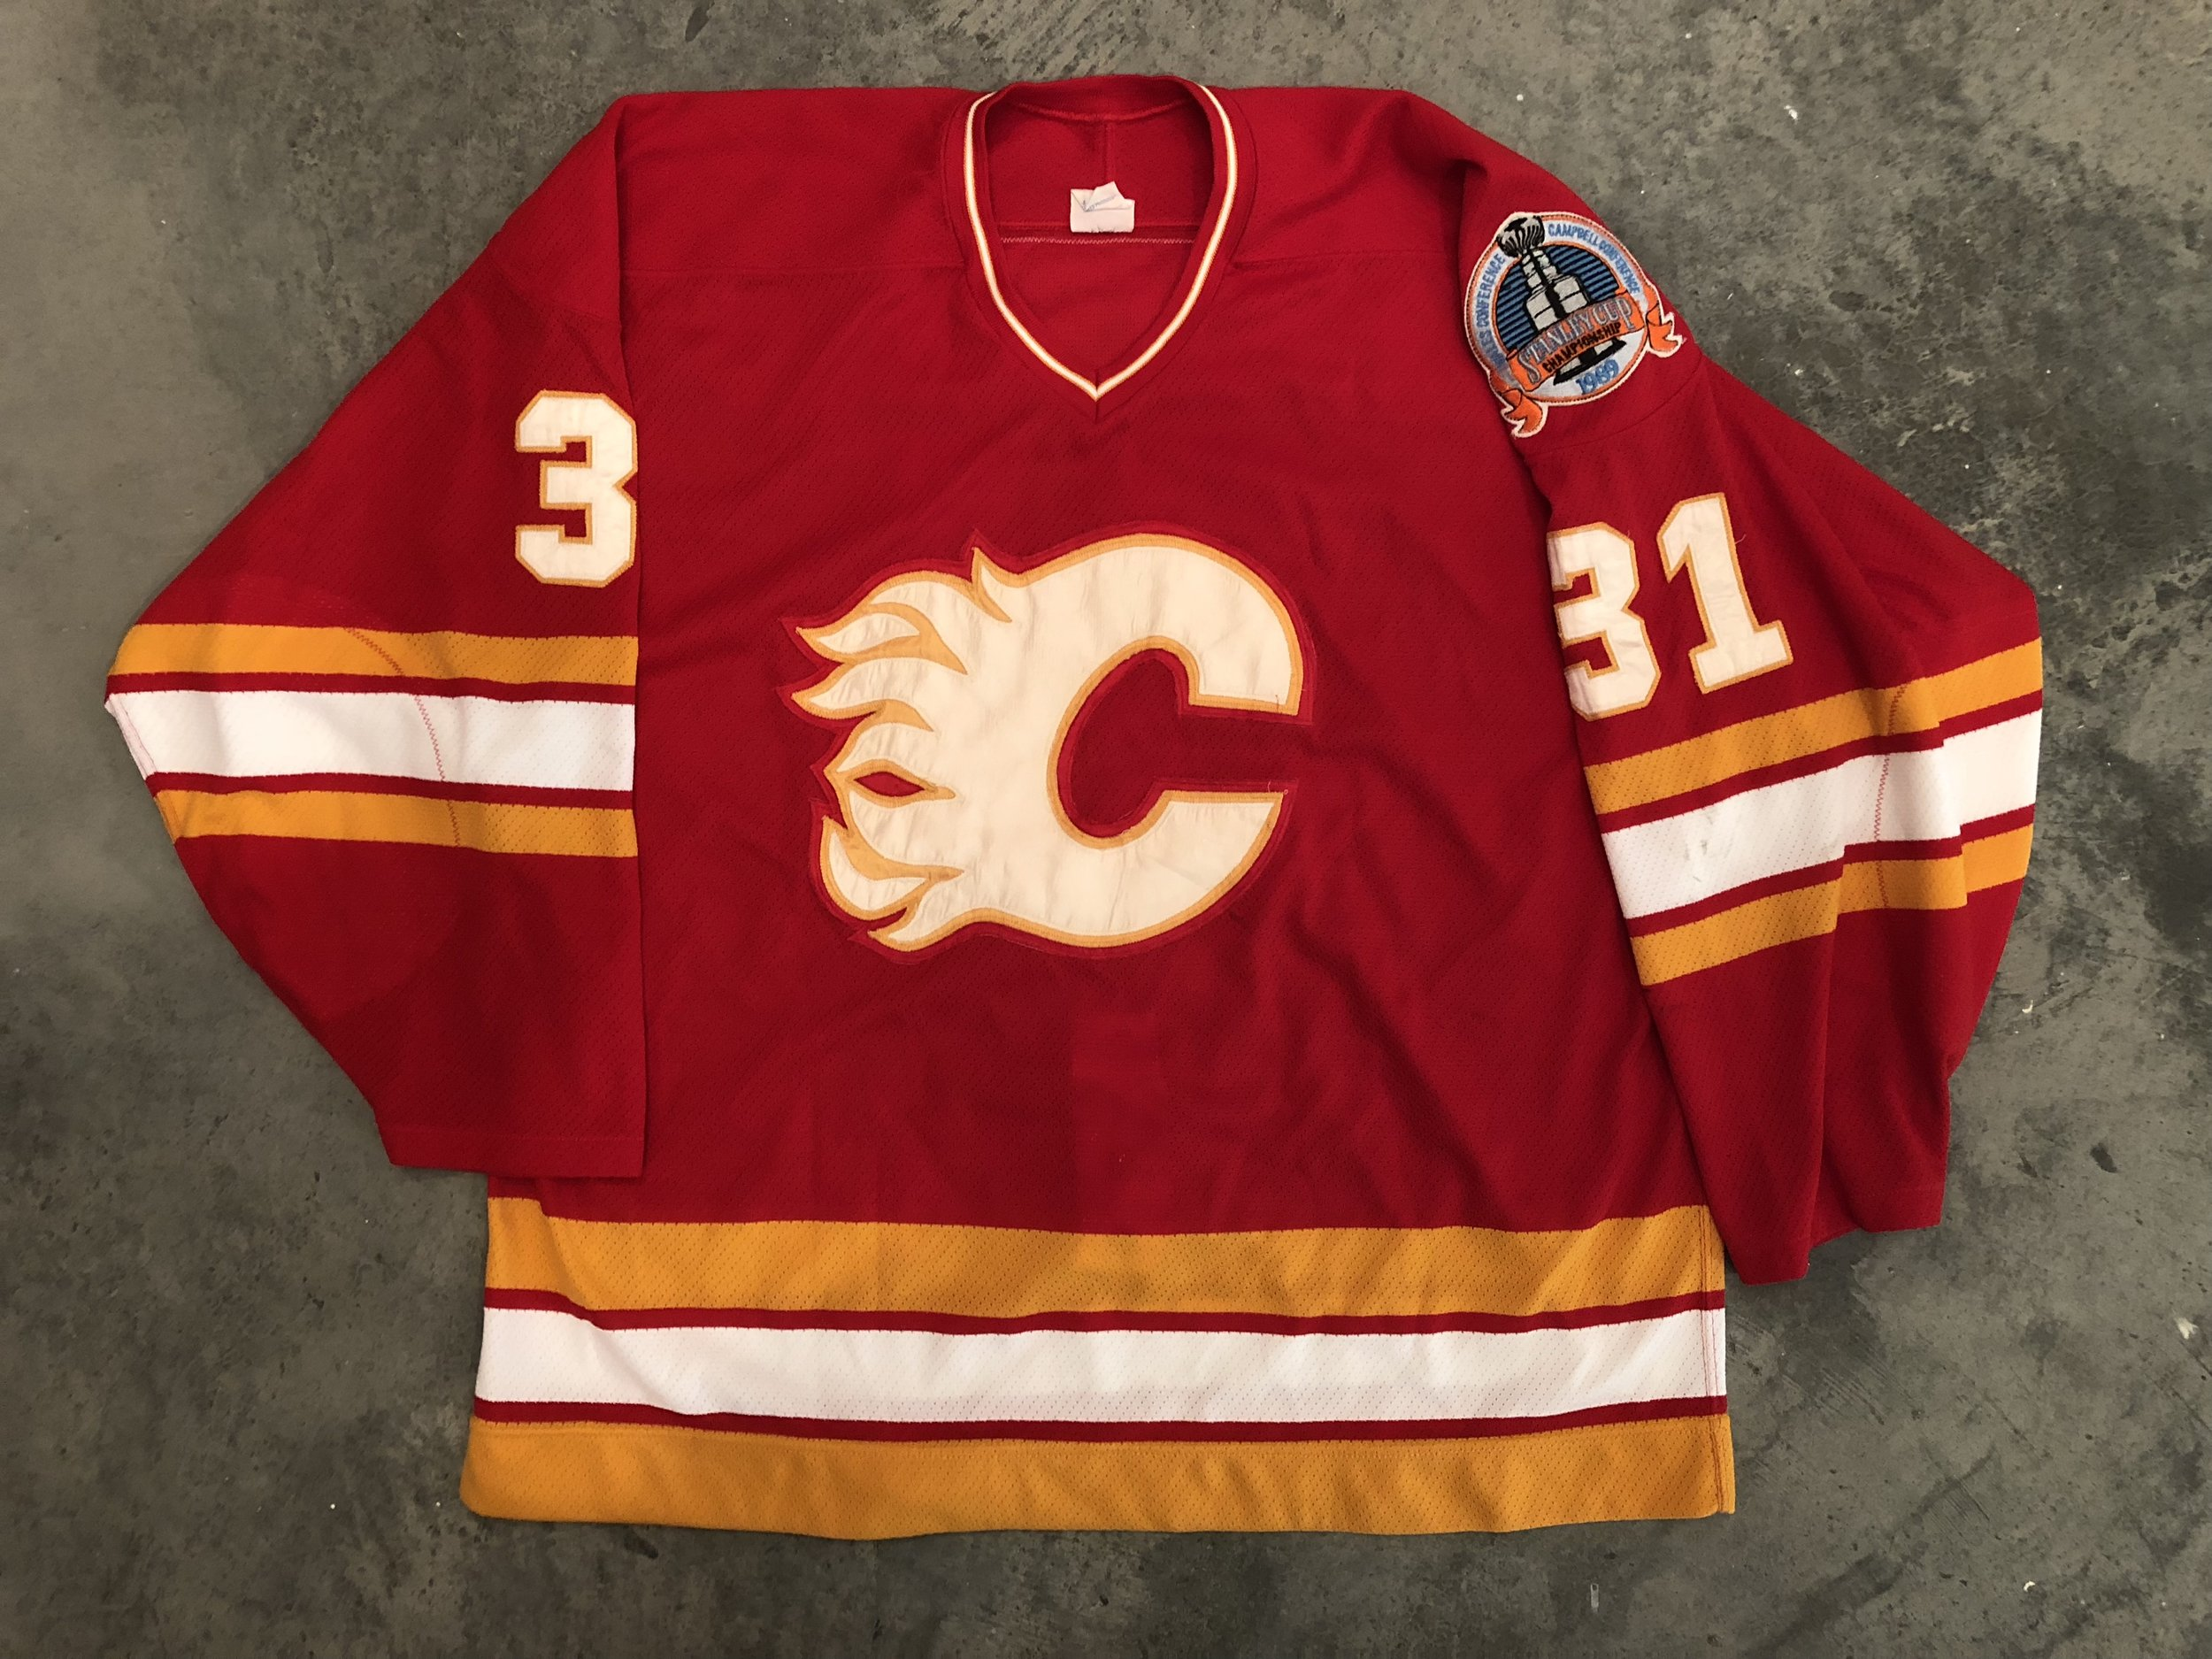 1988-89 Rick Wamsley game worn road jersey with the 1989 Stanley Cup Finals patch